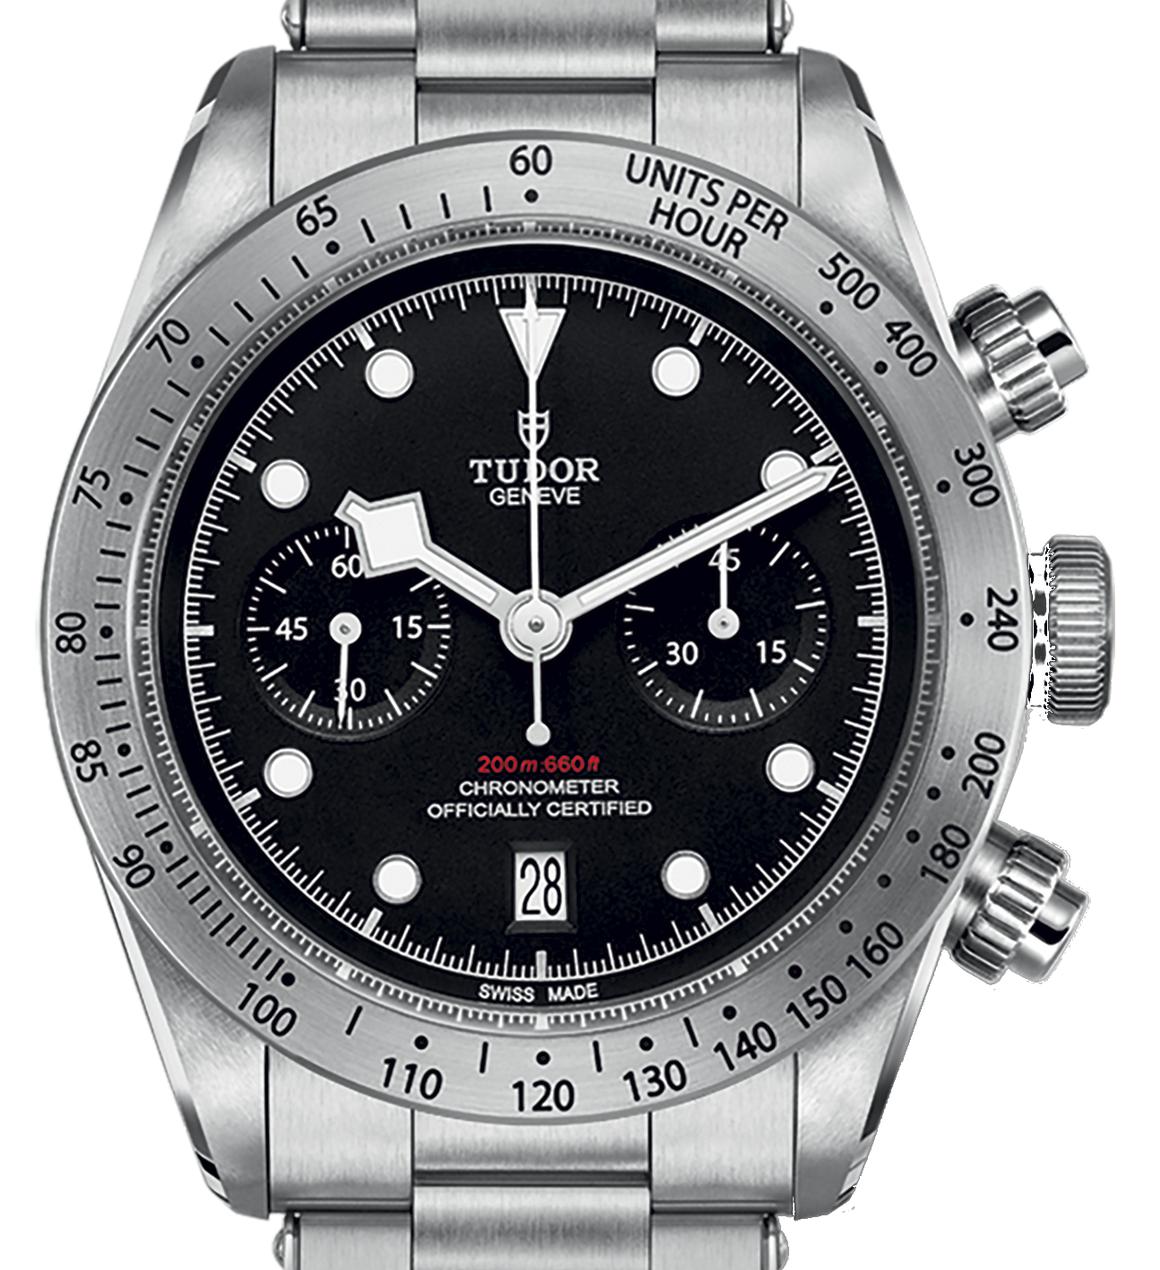 Tudor Black Bay Chrono, Ref: 79350 (Unworn 2020)